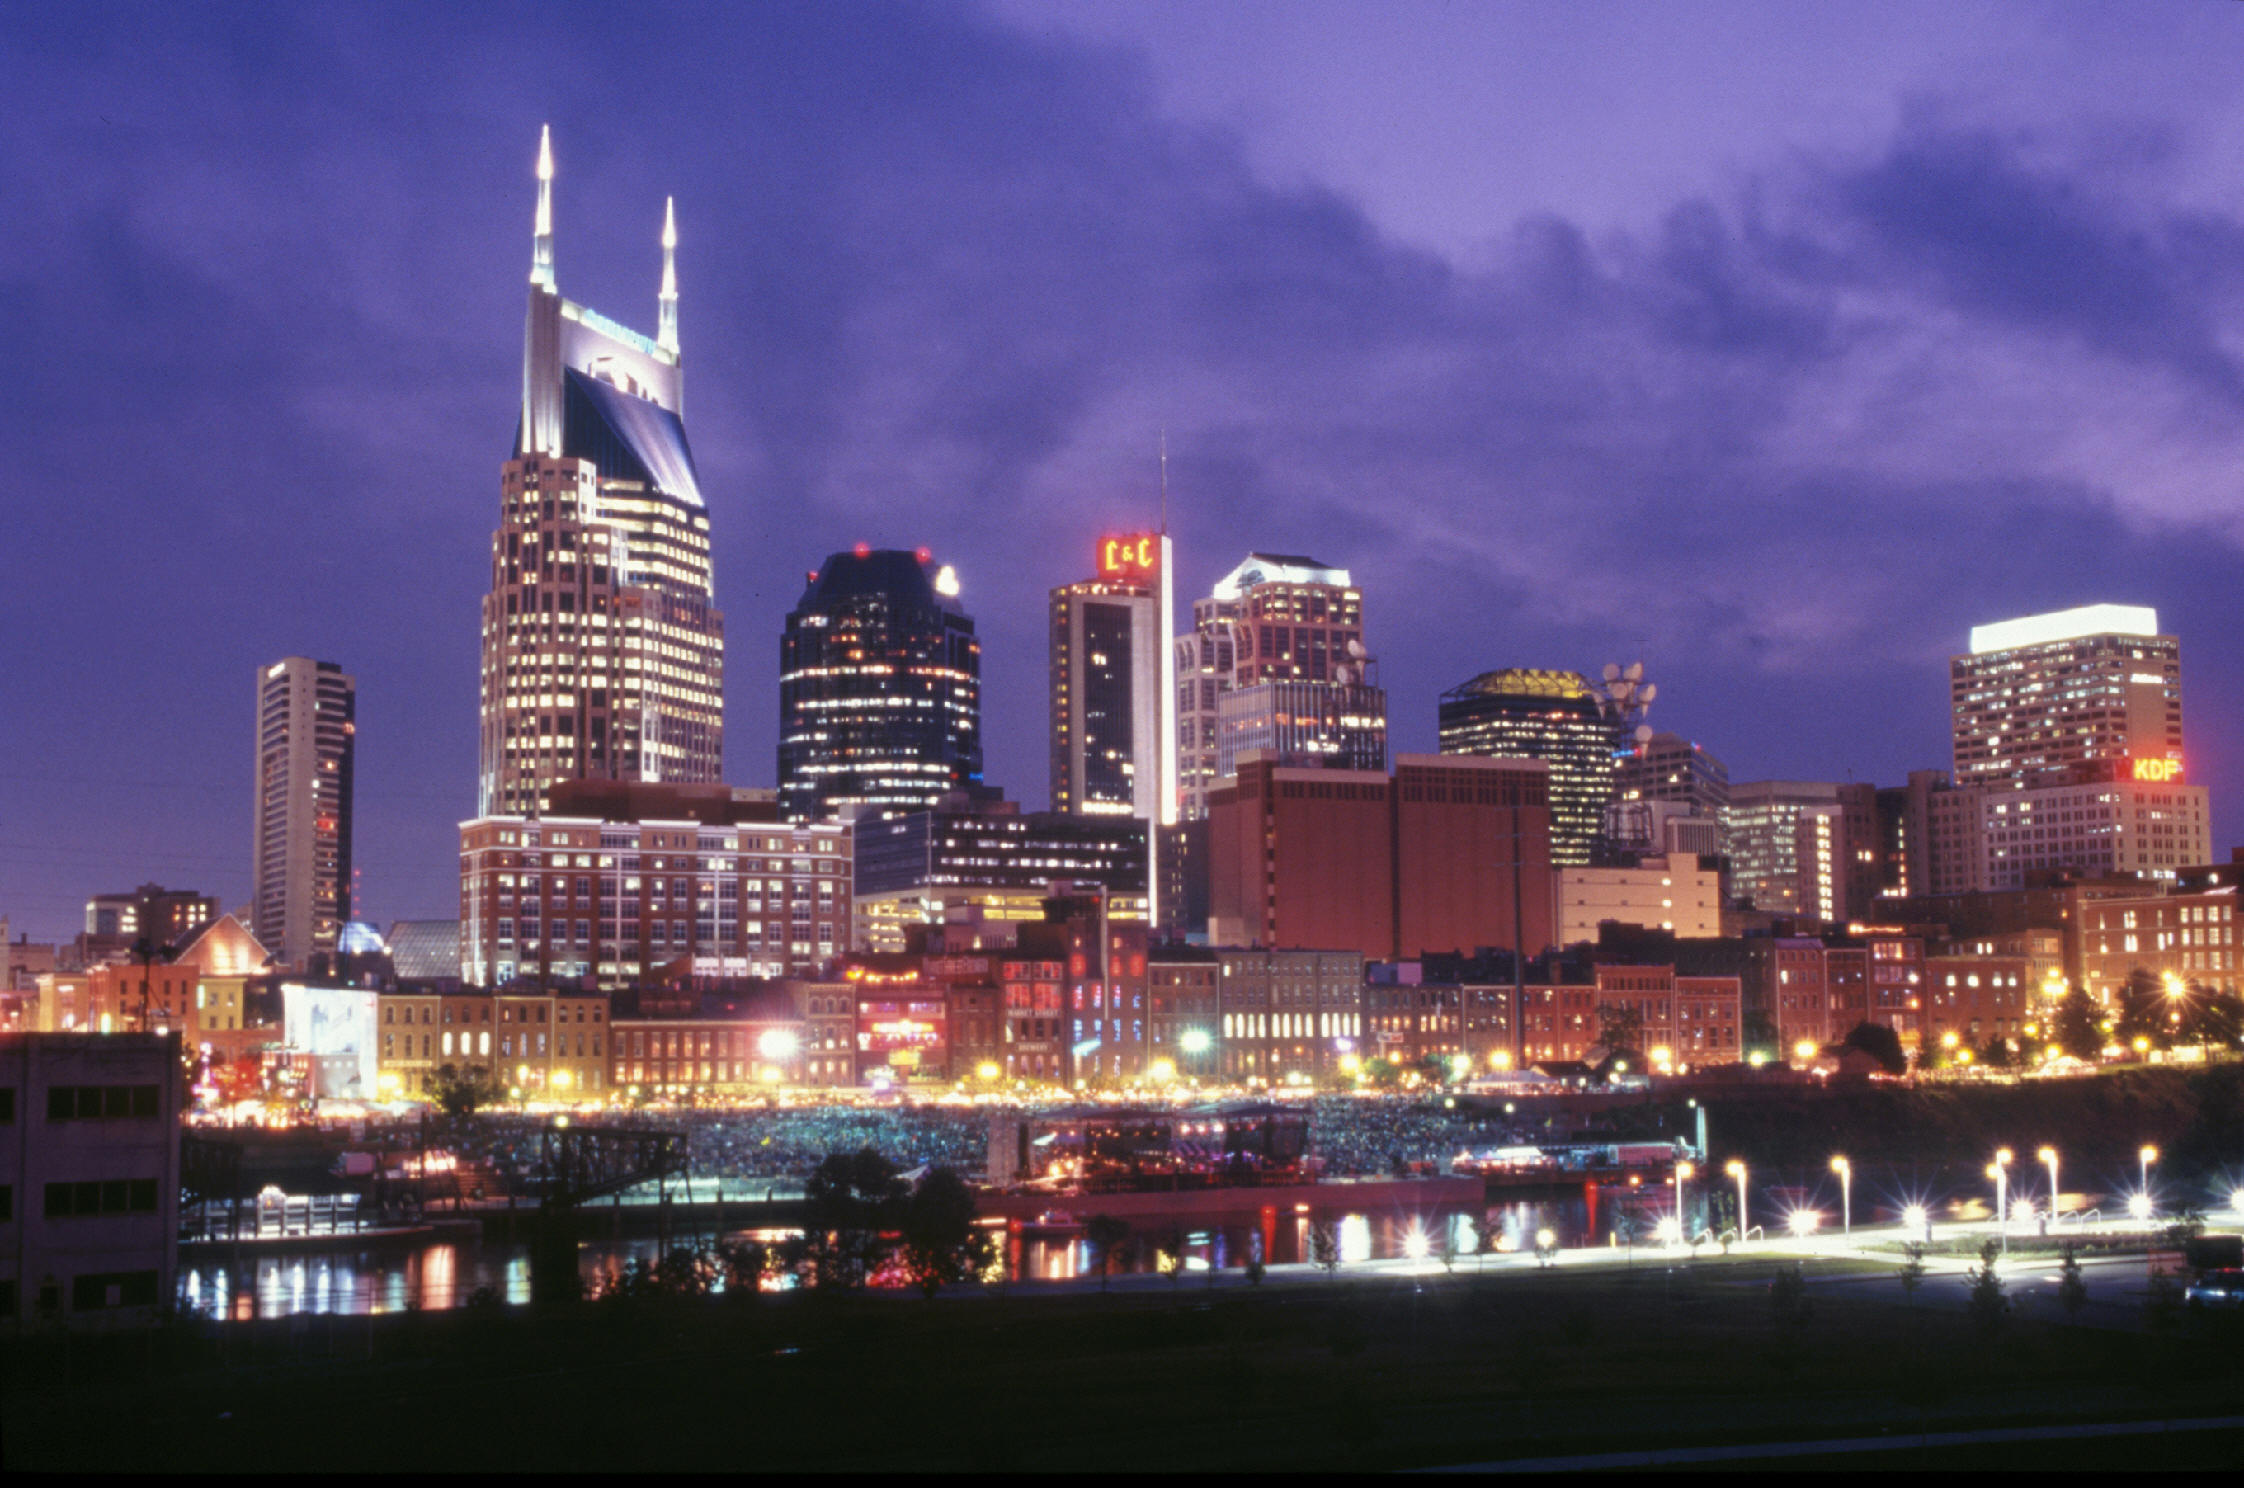 Nashville's Jumpstart Foundry accelerator picks its first 6 startups